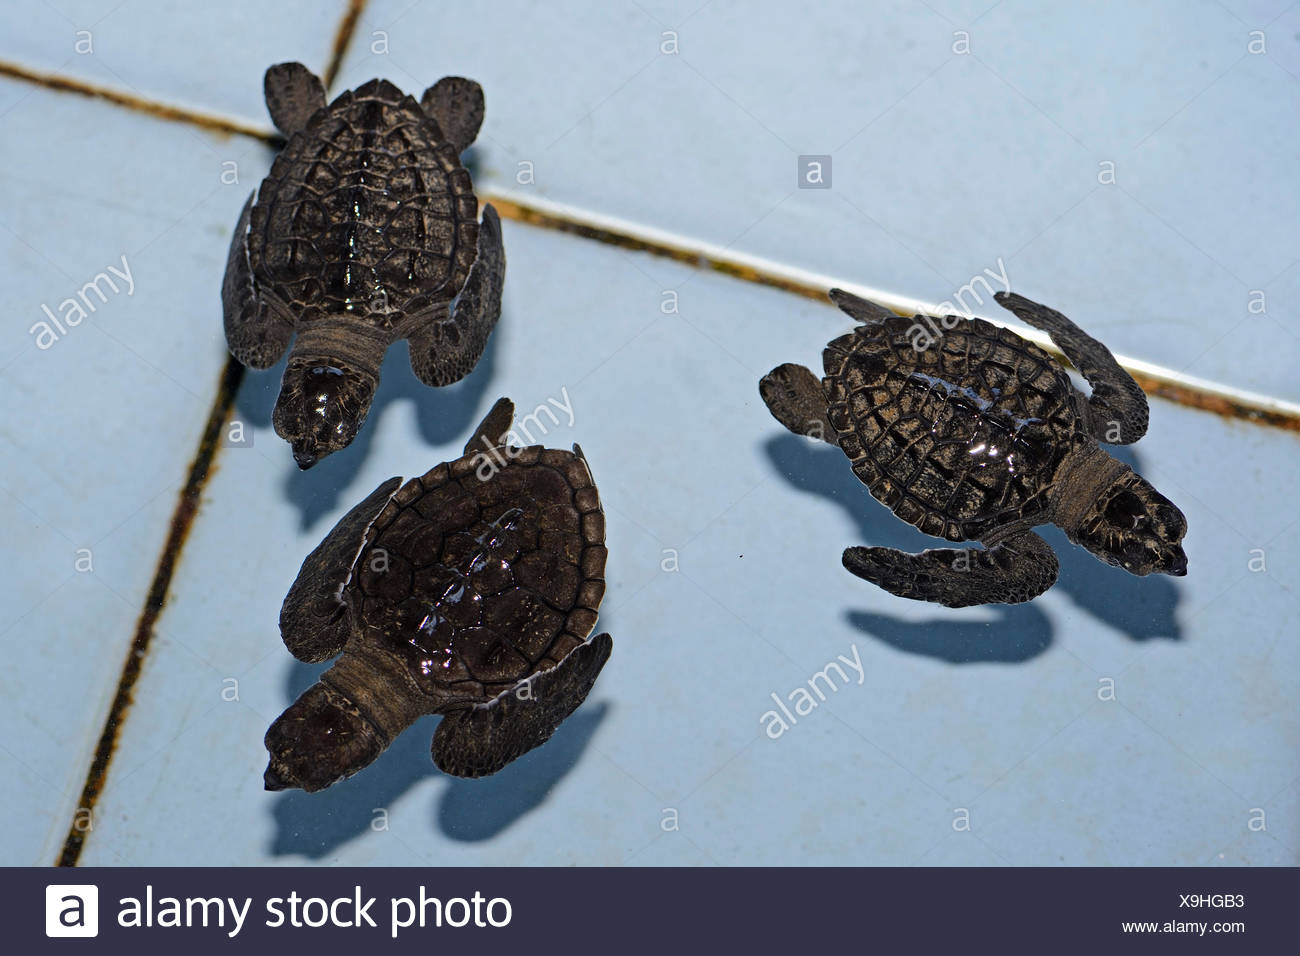 Olive ridley sea turtles (Lepidochelys olivacea) hatchlings, approx. one month, breeding station, Bali, Indonesia - Stock Image